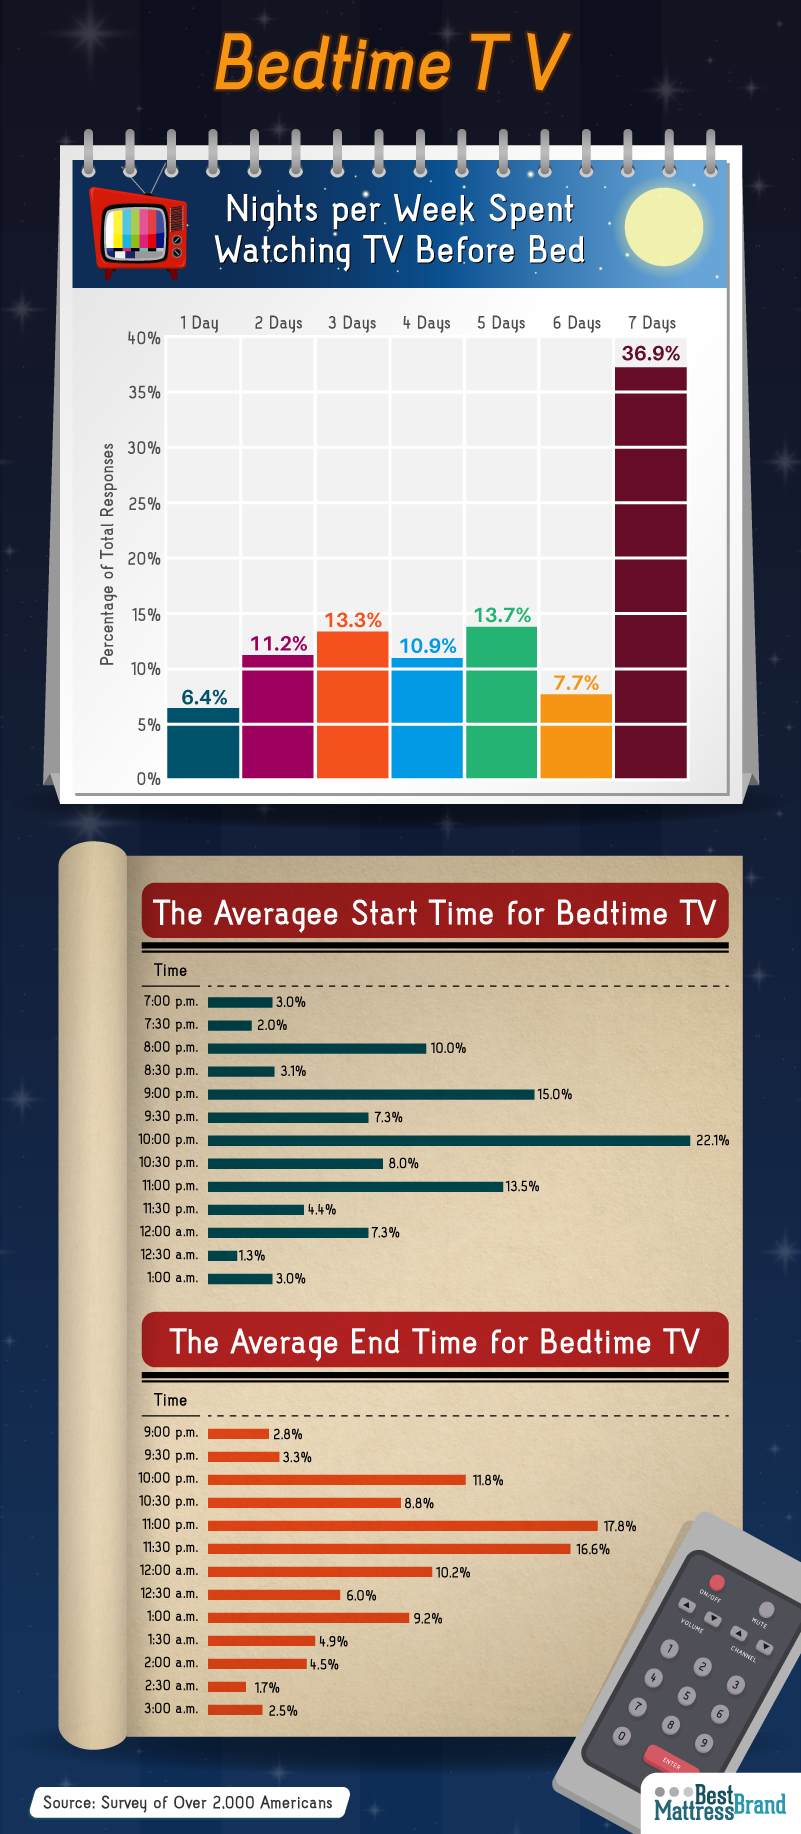 Nights Per Week Spent Watching TV Before Bed